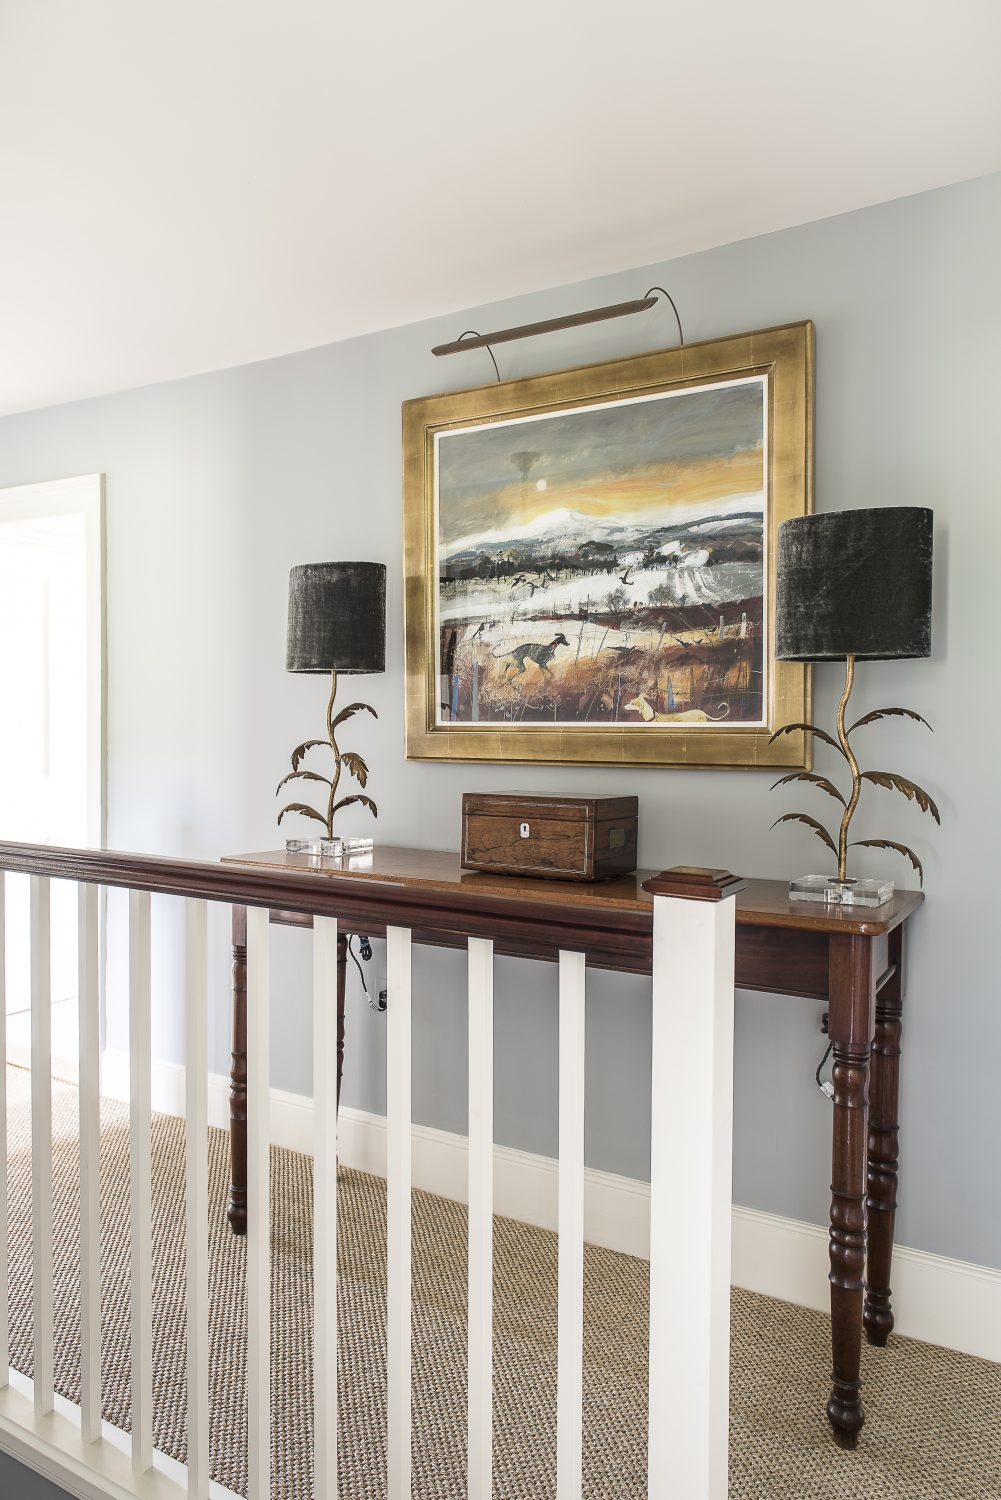 The lamps on the landing console table are from Porta Romana and the painting client's own